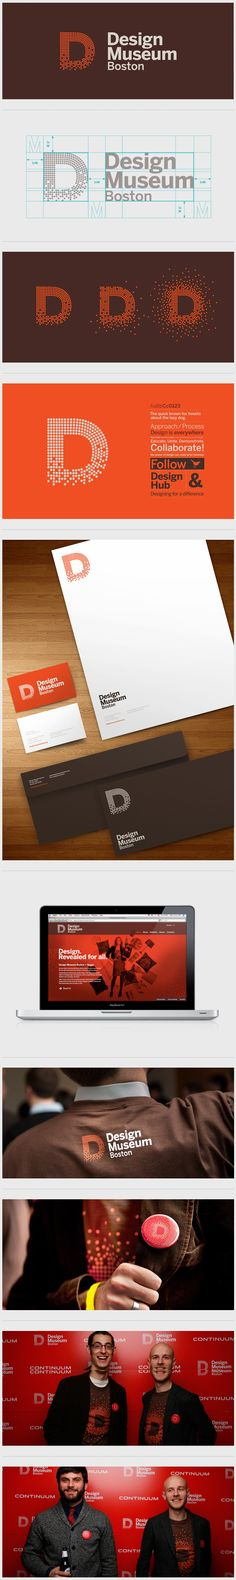 Design Museum Boston on Branding Served